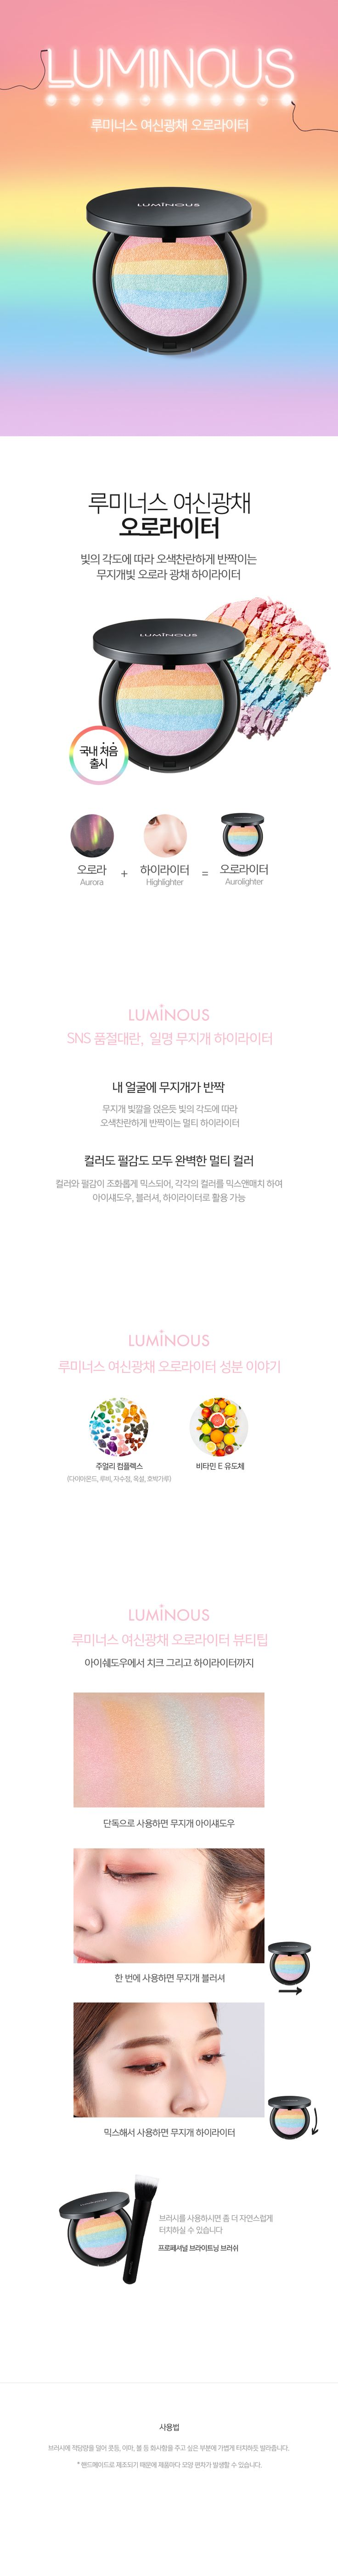 TONYMOLY Luminous Goddess Aurolighter 10g    Features  Aurora + Highlighter = Aurolighter Rainbow Color It has three functions according to the usage method. (Highlighter, Blusher, Eye Shadow)  Detail    How to use  Use right amount using brush, pat light